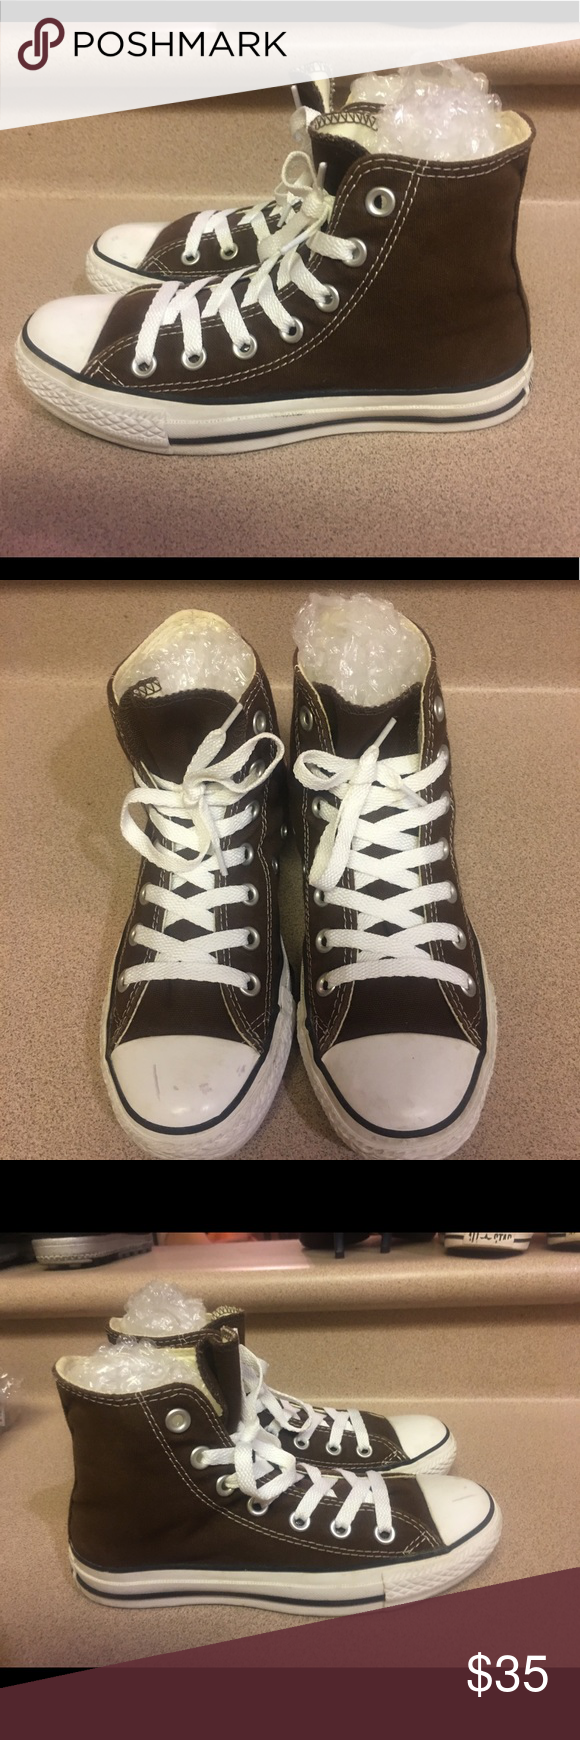 5586fce5813c Spotted while shopping on Poshmark  Converse Brown Hi Top Chuck Taylor  Women 5!  poshmark  fashion  shopping  style  Converse  Shoes